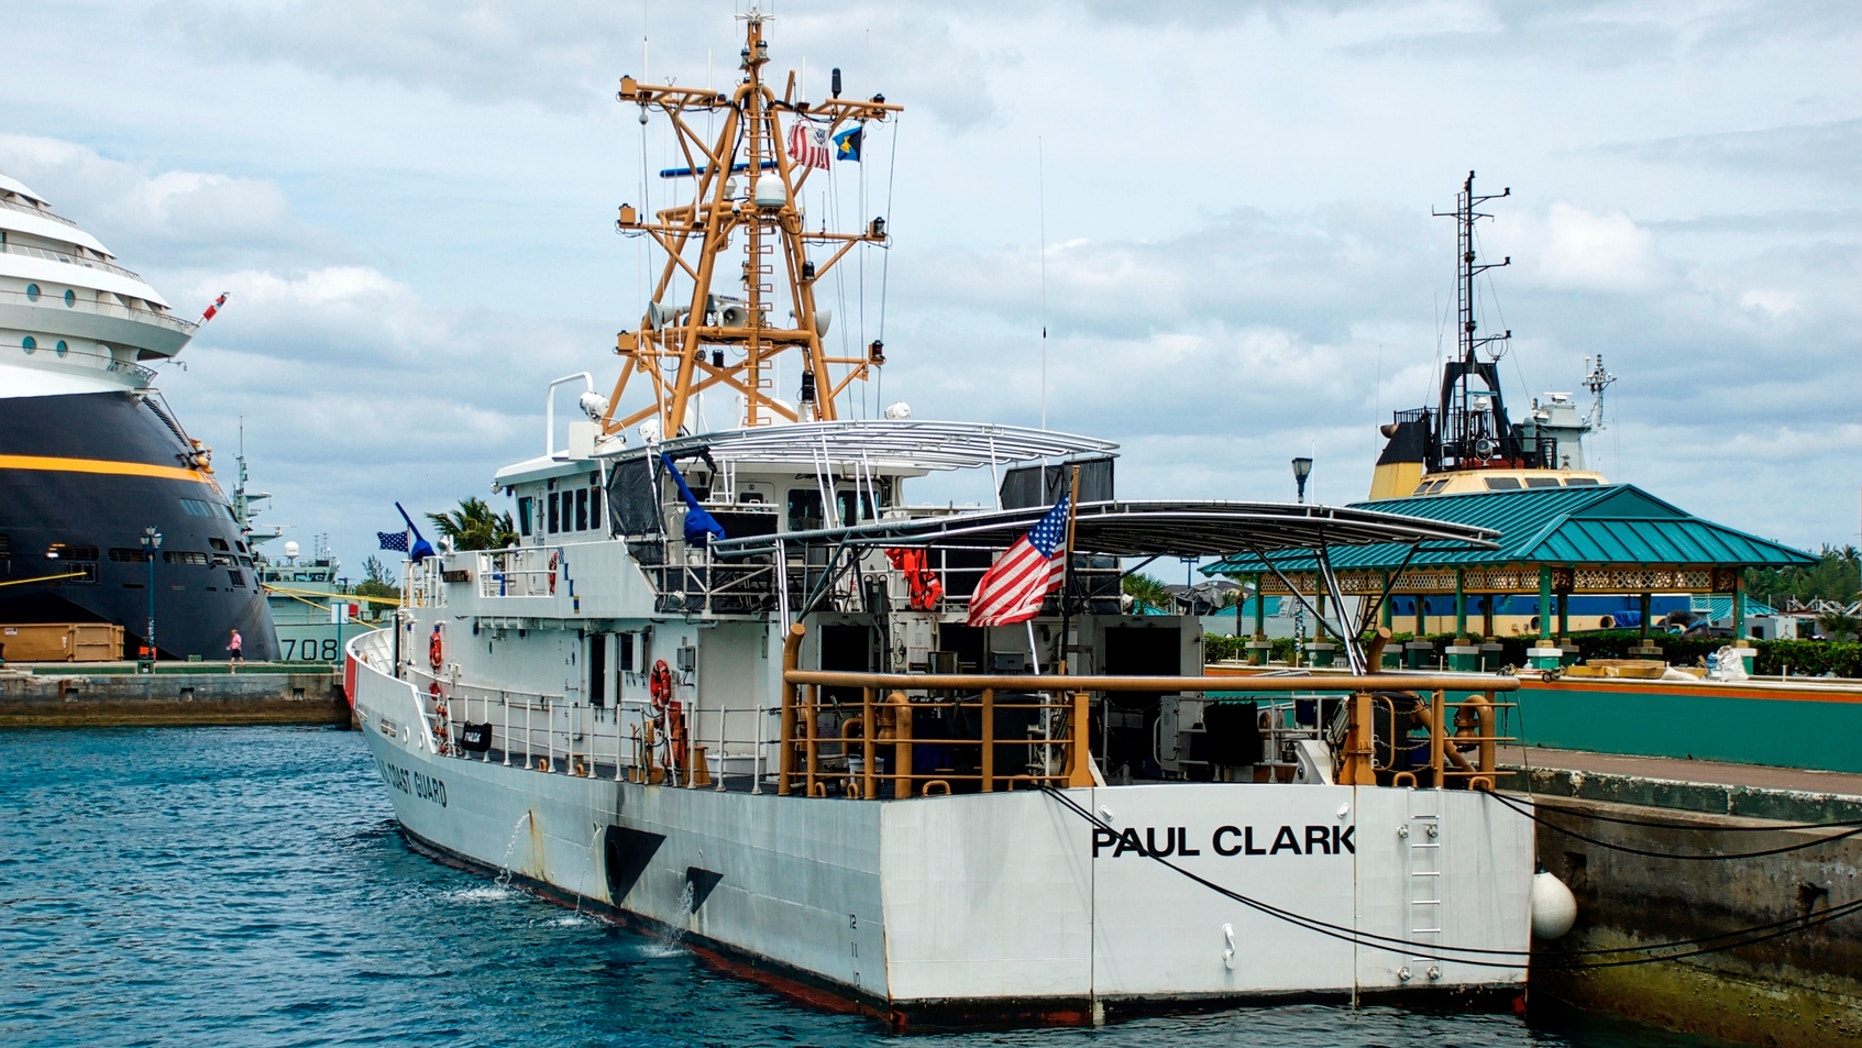 """The U.S. Coast Guard ship """"Paul Clark"""" sits dockside at port in Nassau, The Bahamas, as the stern of the Disney Dream passenger cruise ship."""